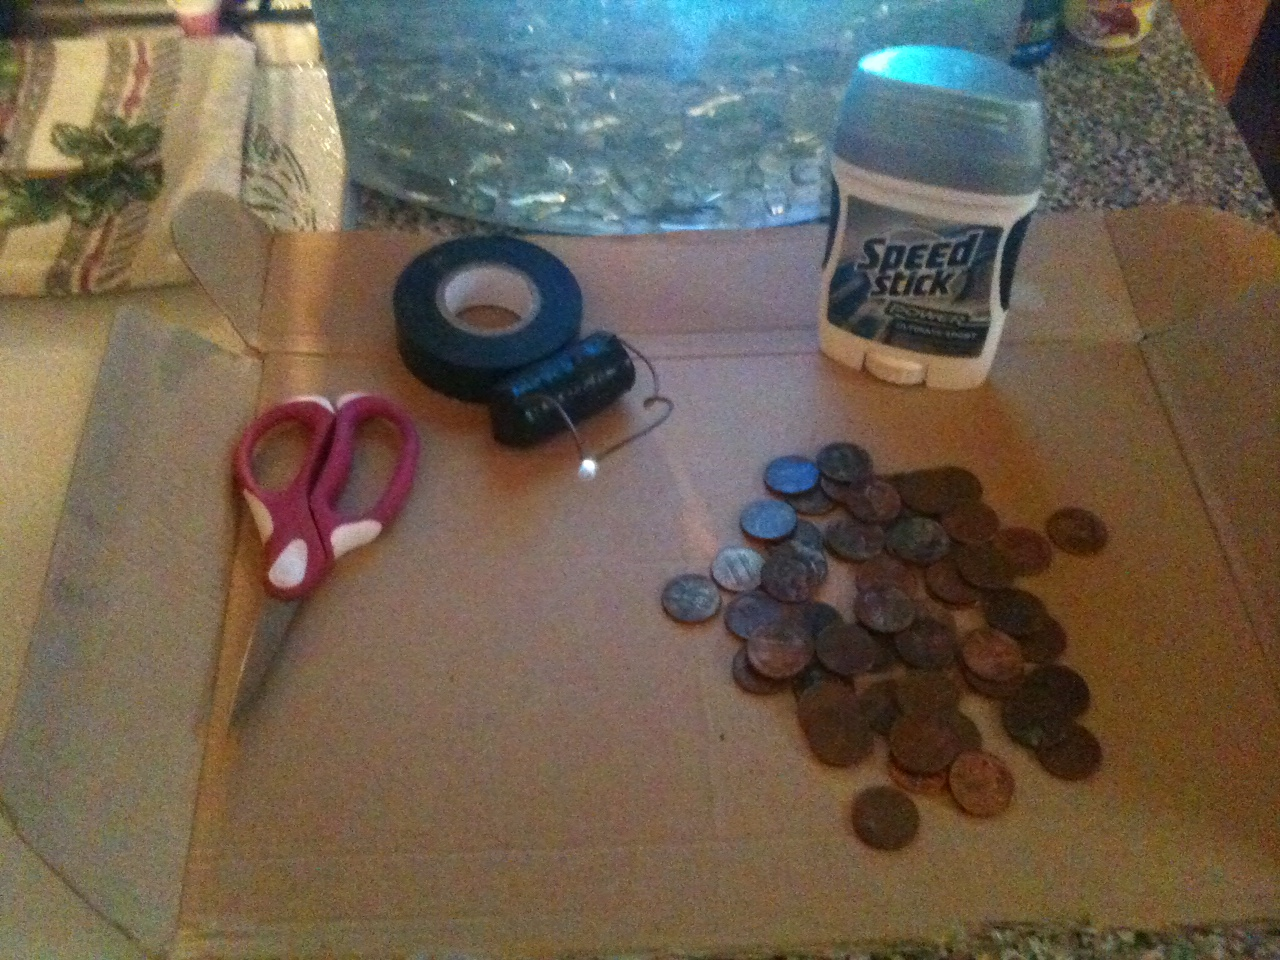 Battery from Deodorant & Pennies (rechargeable)